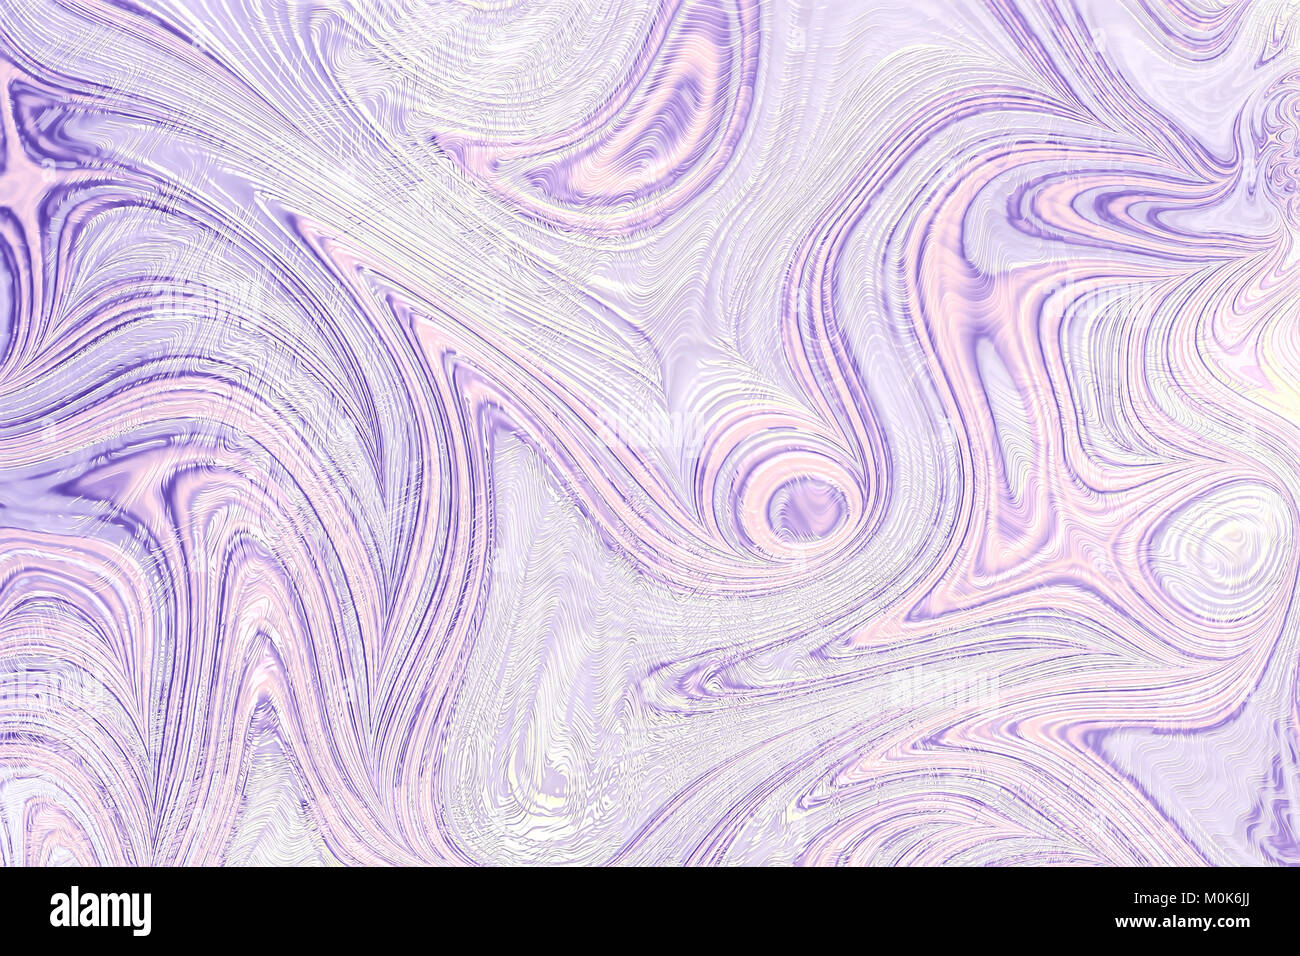 Fantastic Wallpaper Marble Lilac - pale-marble-texture-computer-generated-image-fractal-art-chaos-waves-M0K6JJ  Collection_619864.jpg